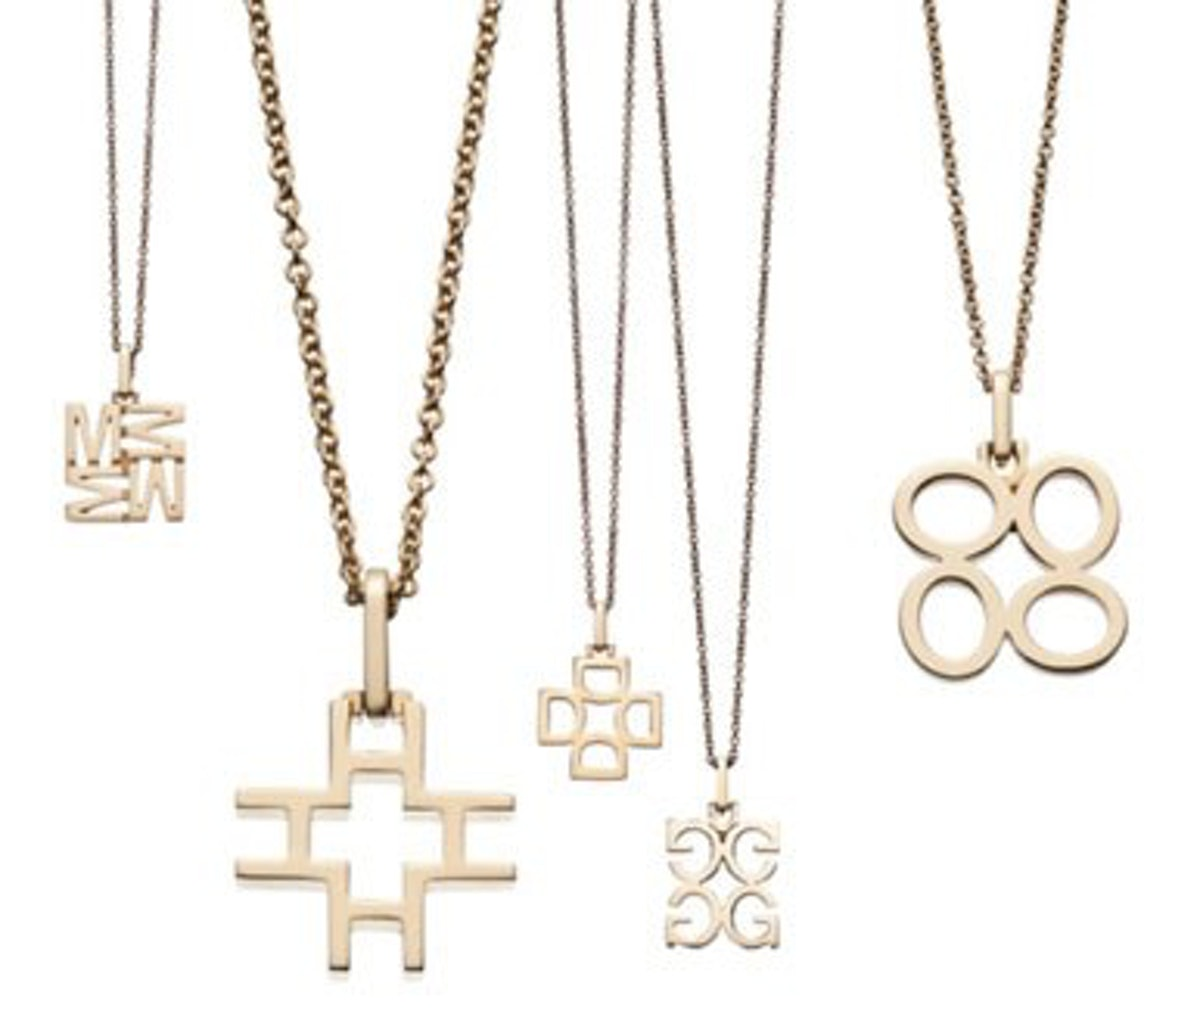 blog-India-Hicks-18-carat-12mm-Initial-Pendants-w_cable-chain%2C-%24595.jpg